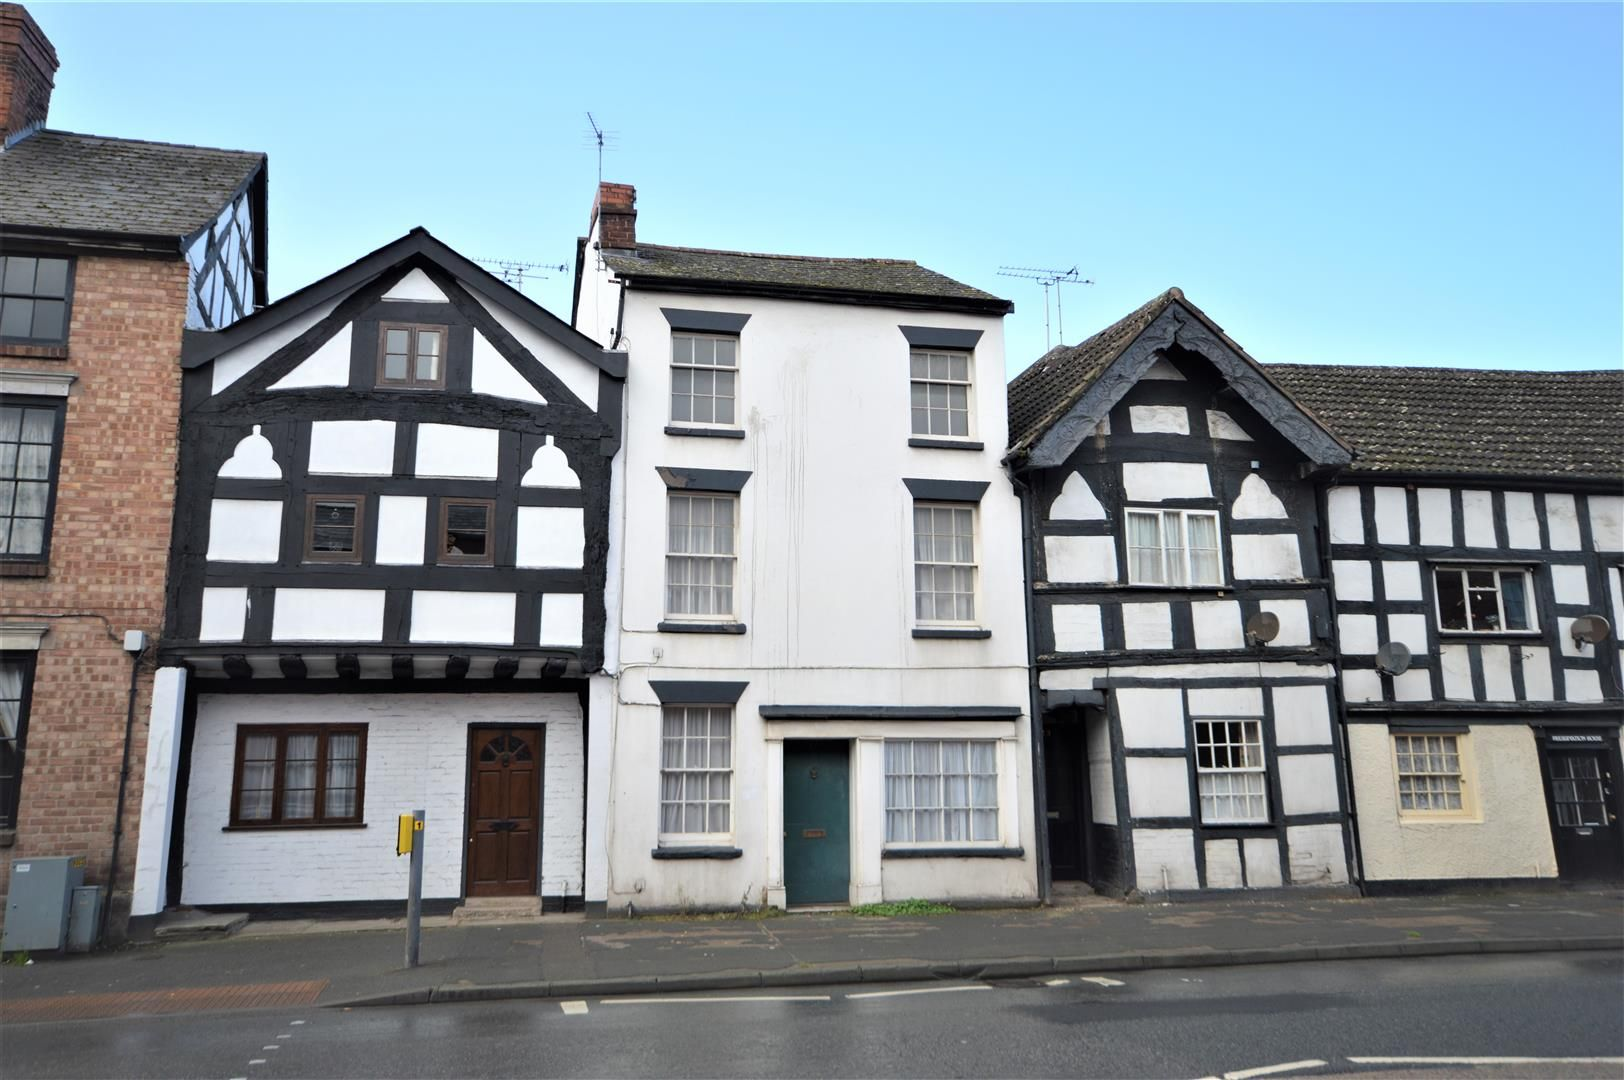 4 bed terraced for sale in Leominster, HR6